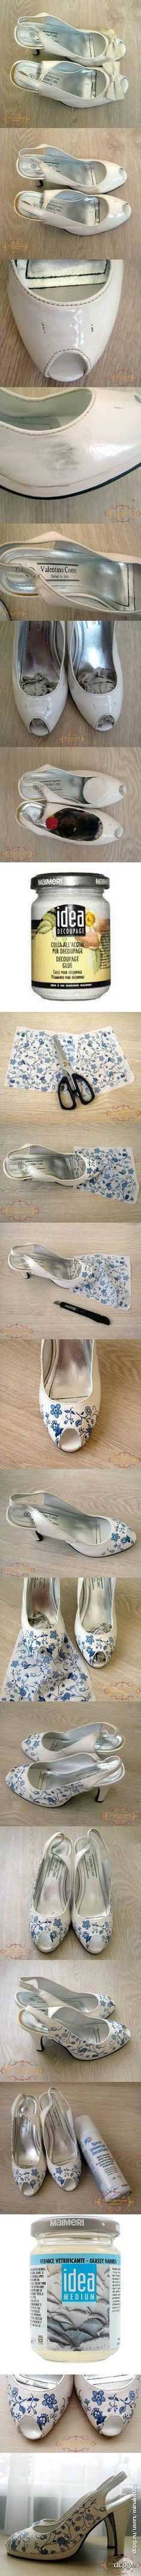 Decoupage for Old Heels